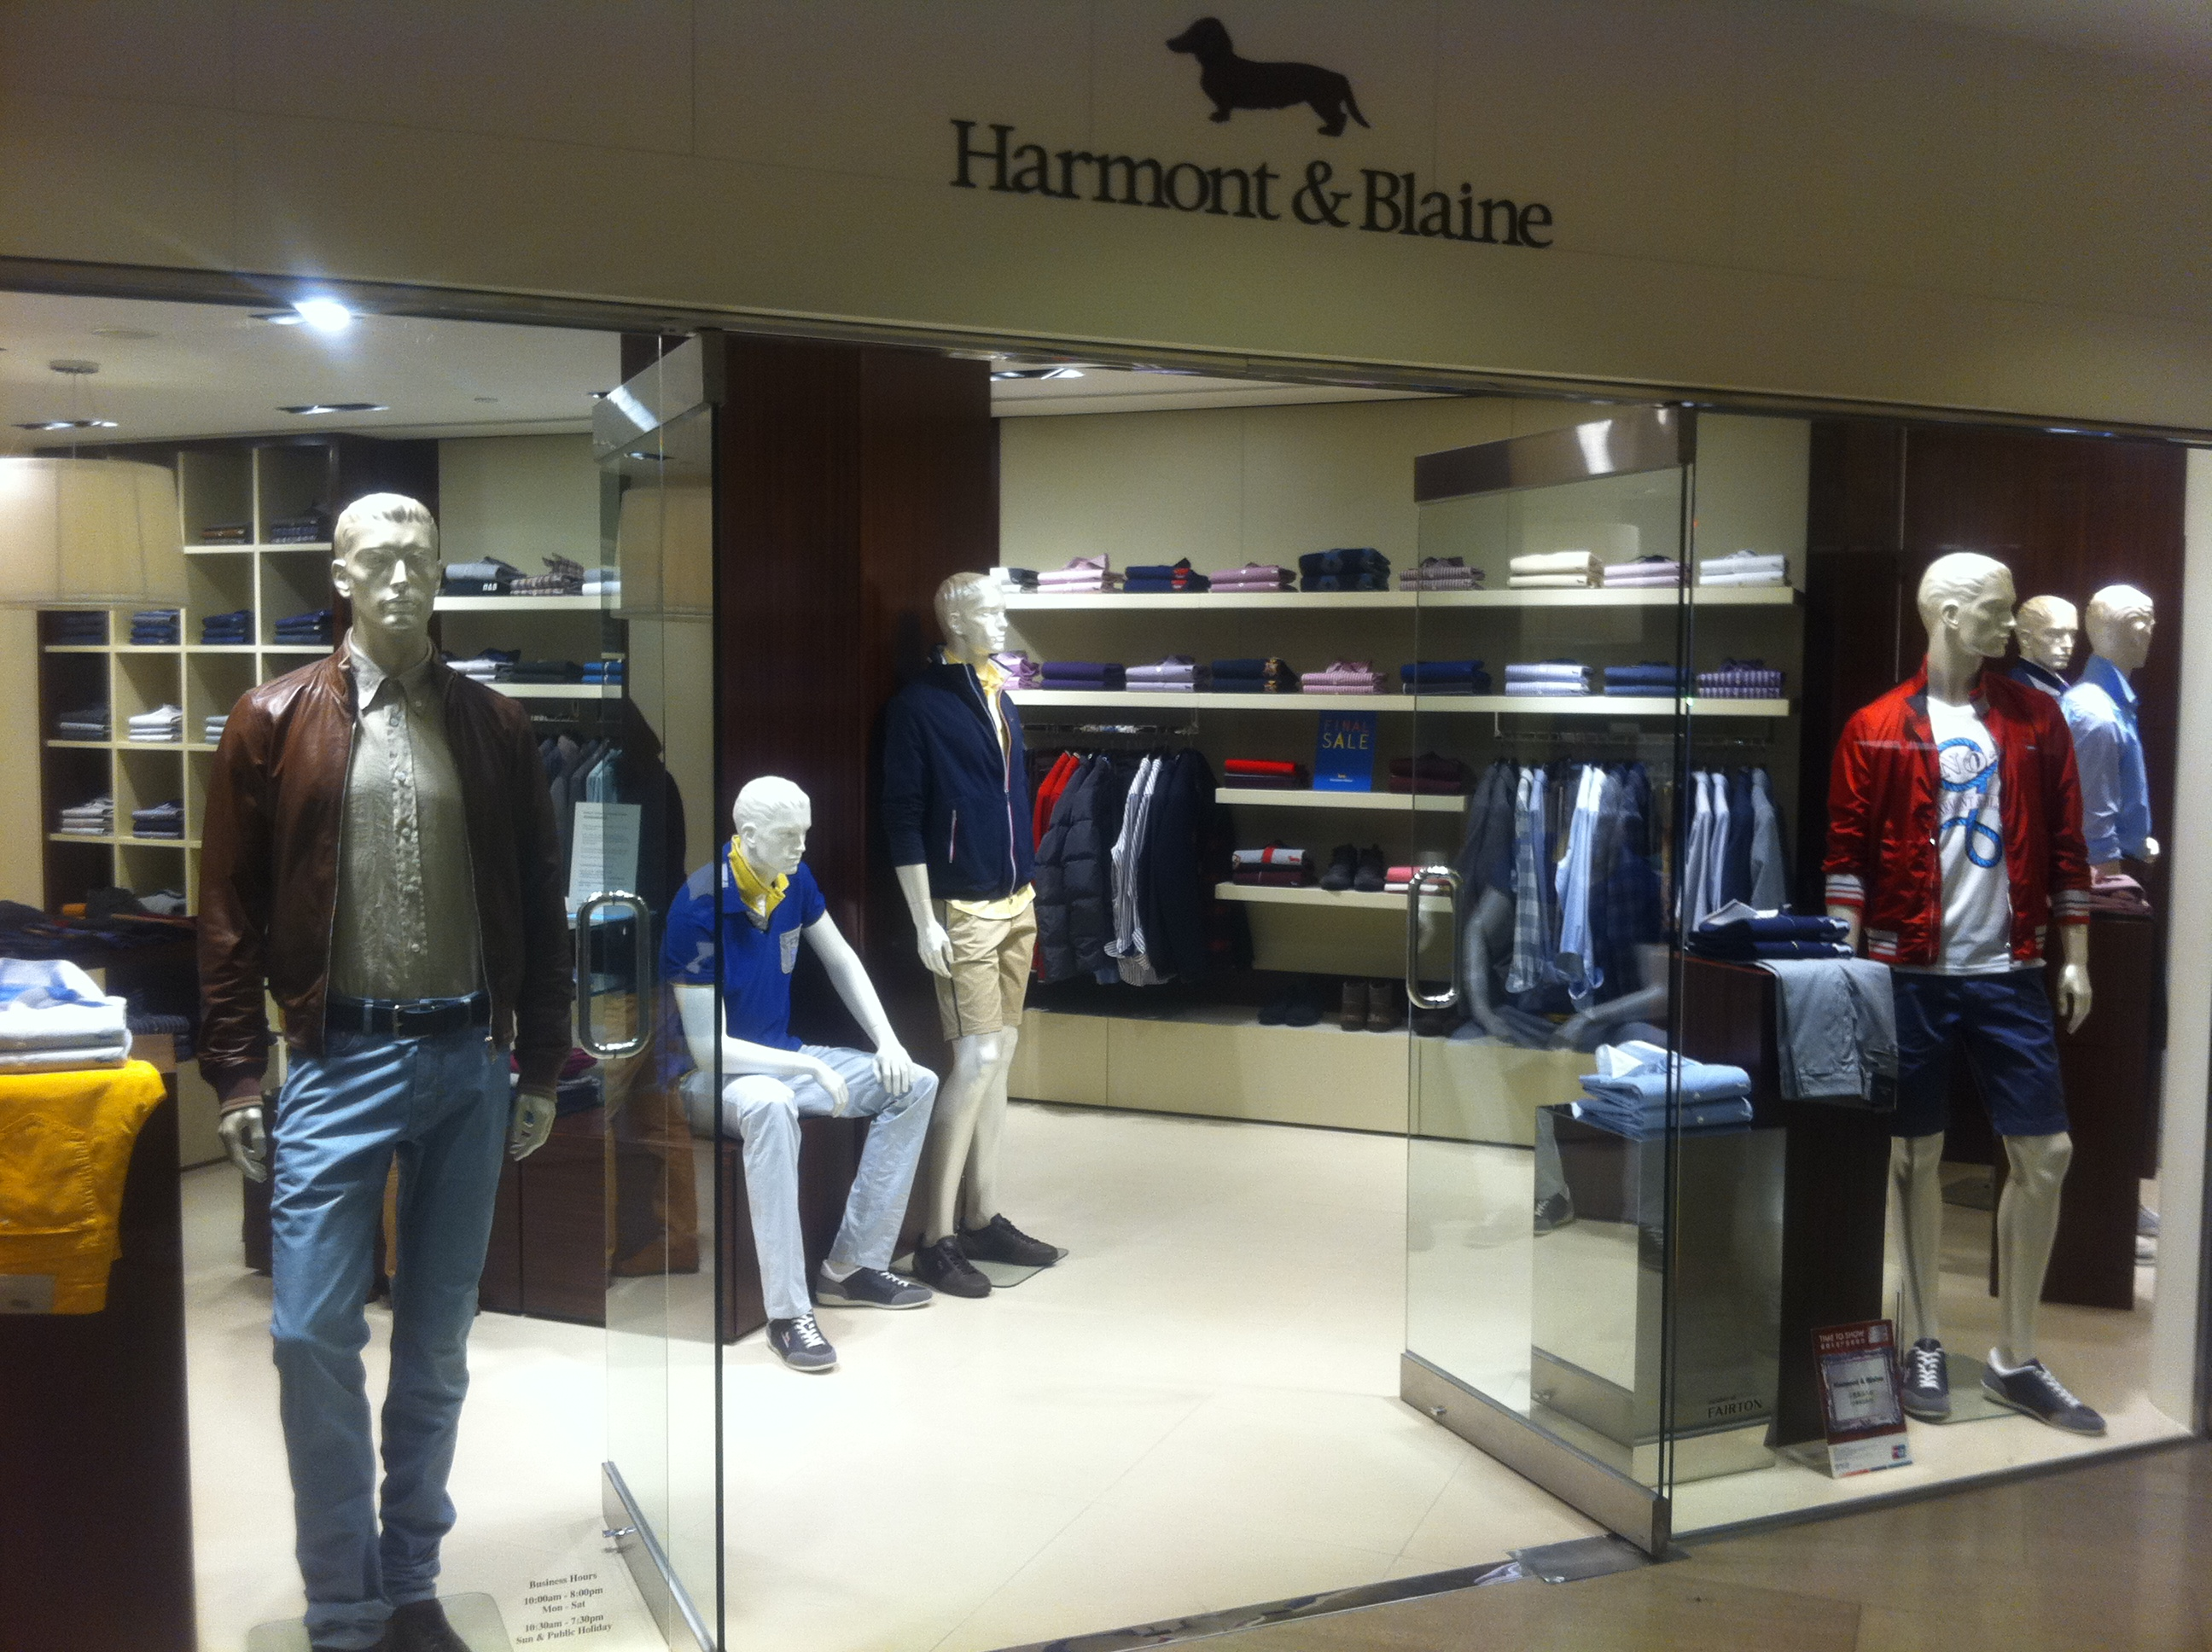 Harmont & Blaine Fashion Best Sellers from 1 Stores | StylightBrands: Nike, Clarks, Barbour, Anne Klein, Michael Kors.